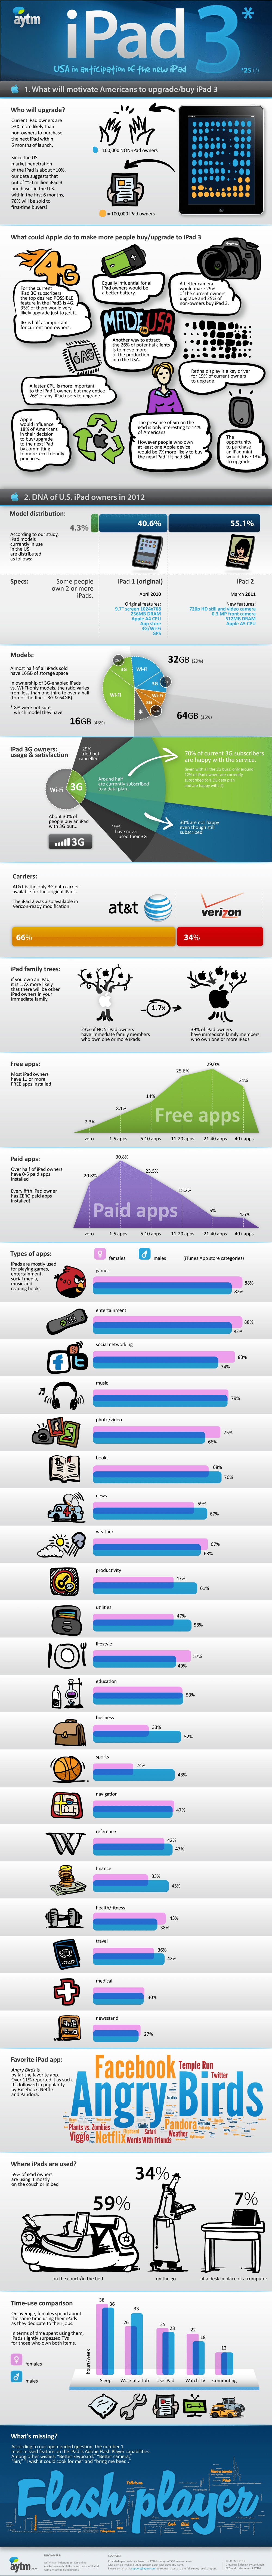 The Anticipation Of The iPad 3 In The U.S. [Infographic]